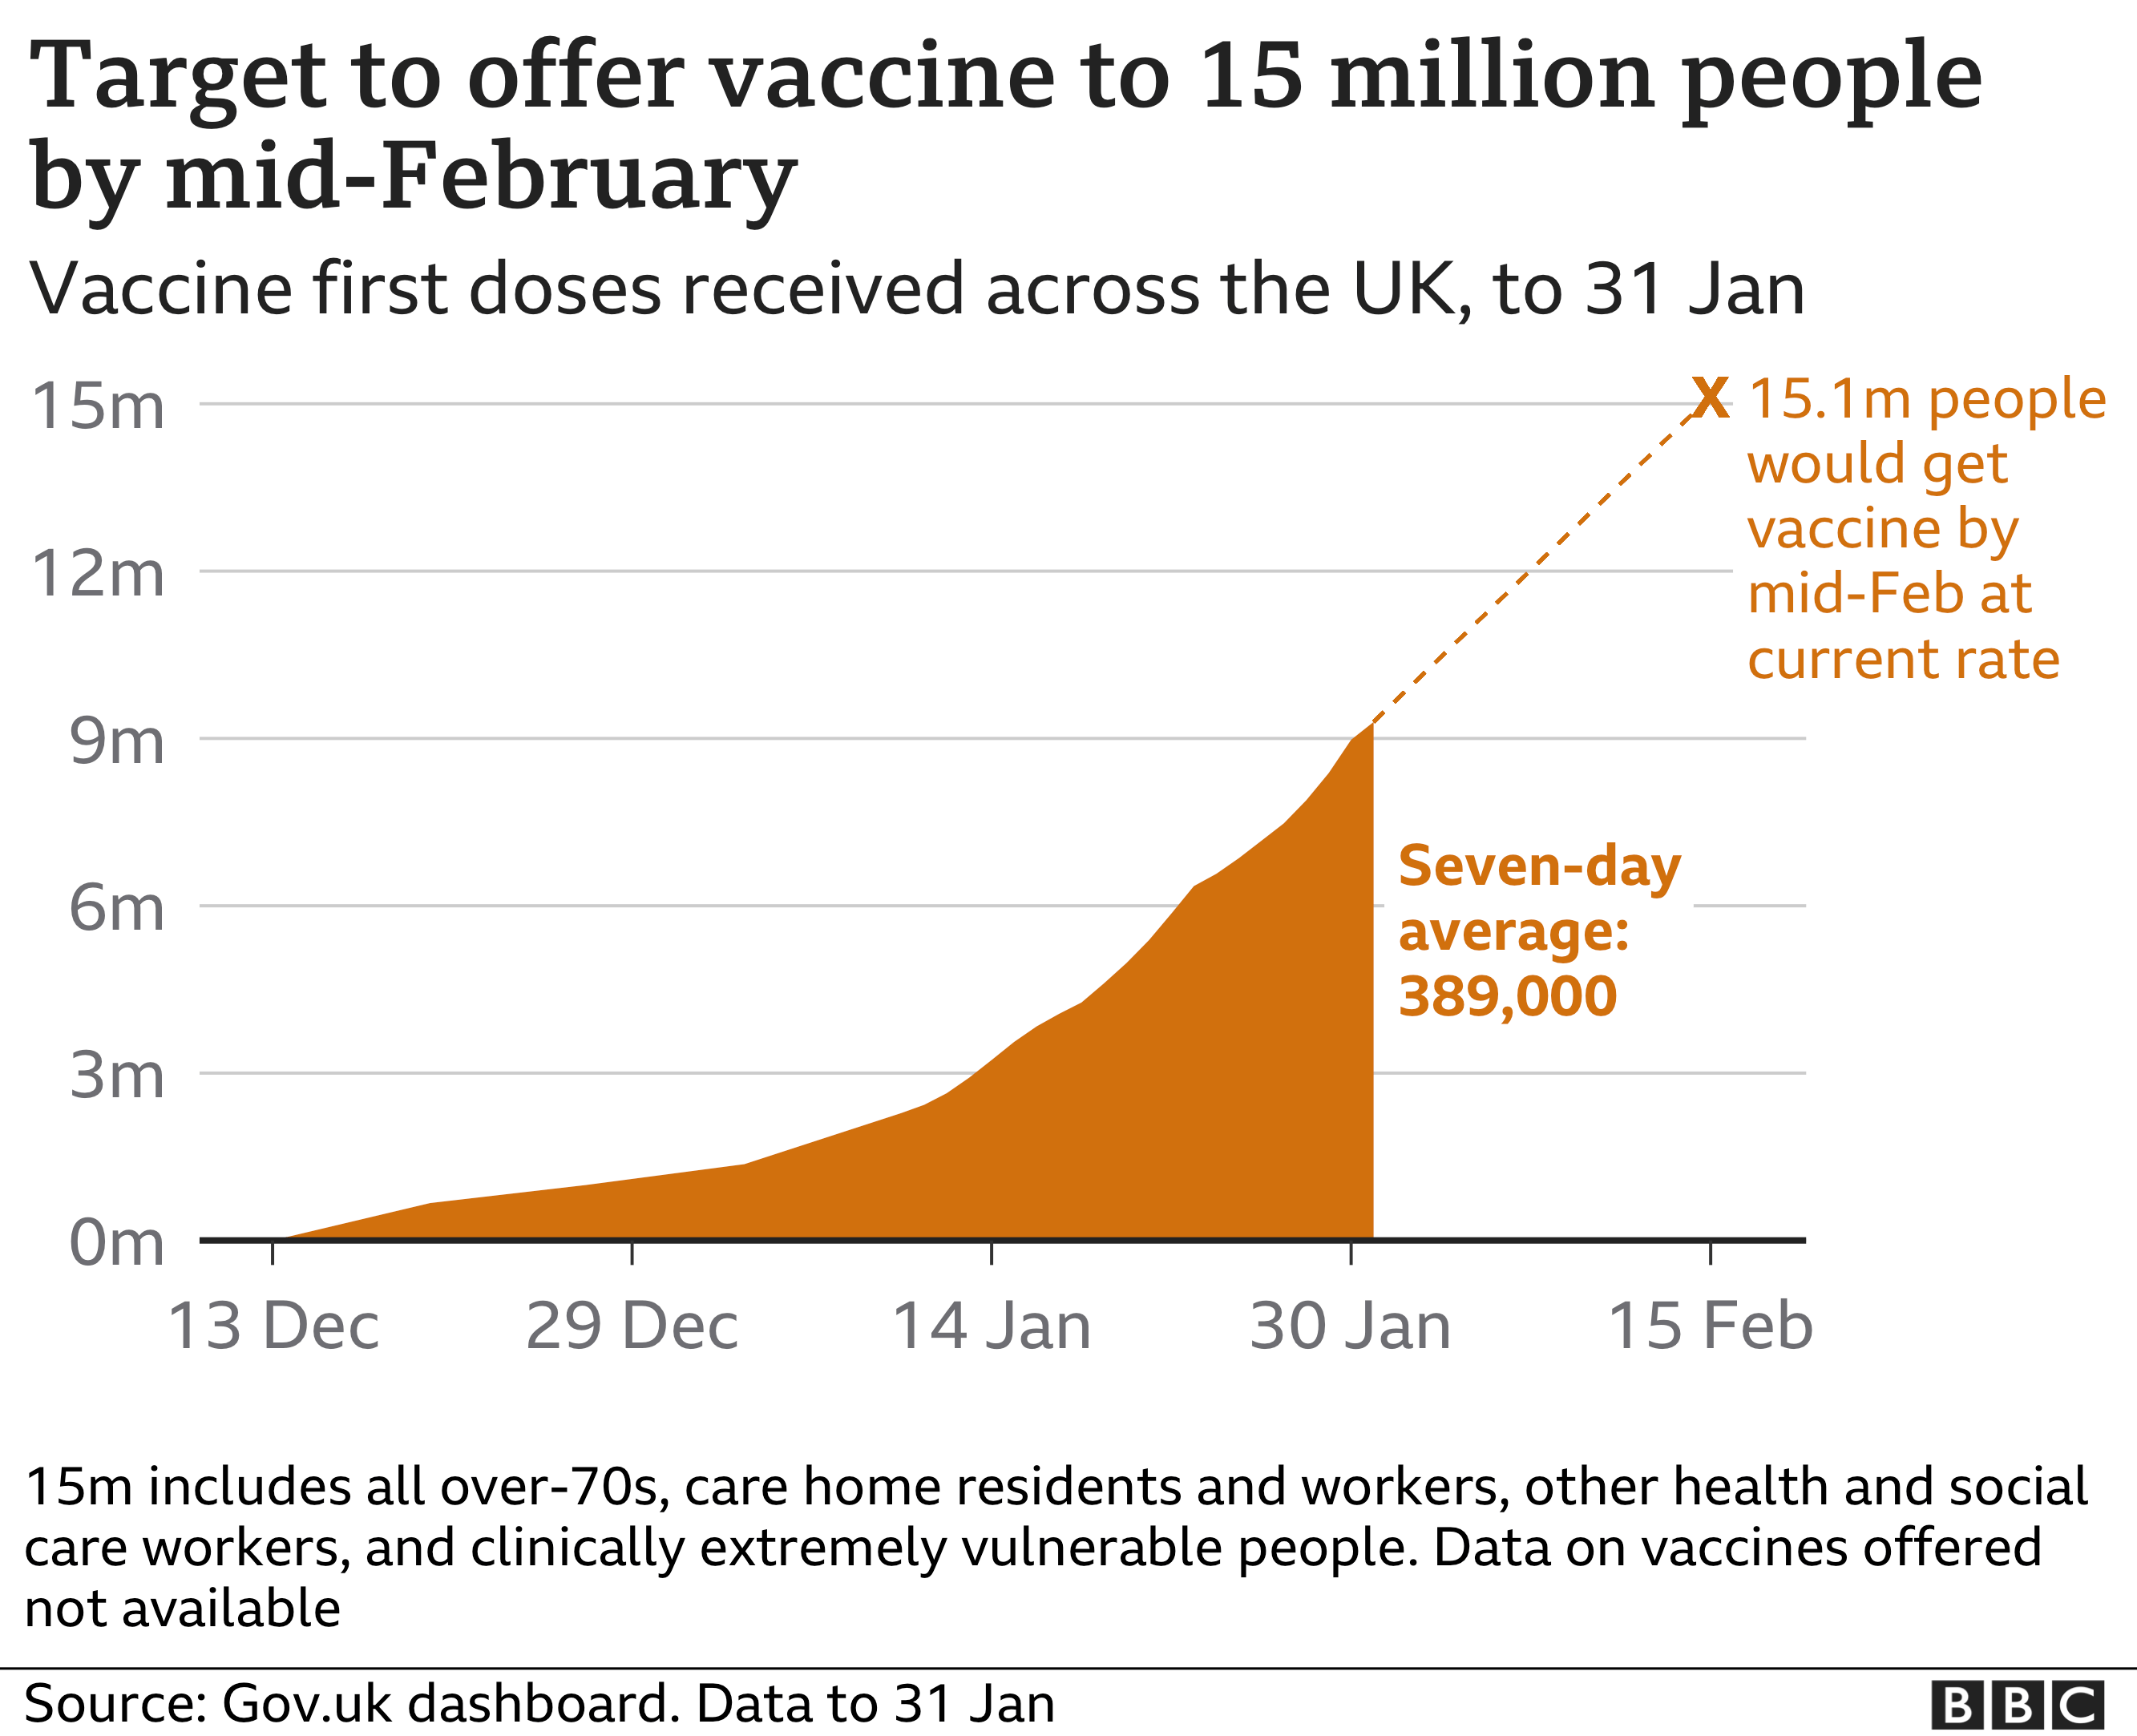 Chart showing the latest on the UK's vaccination target